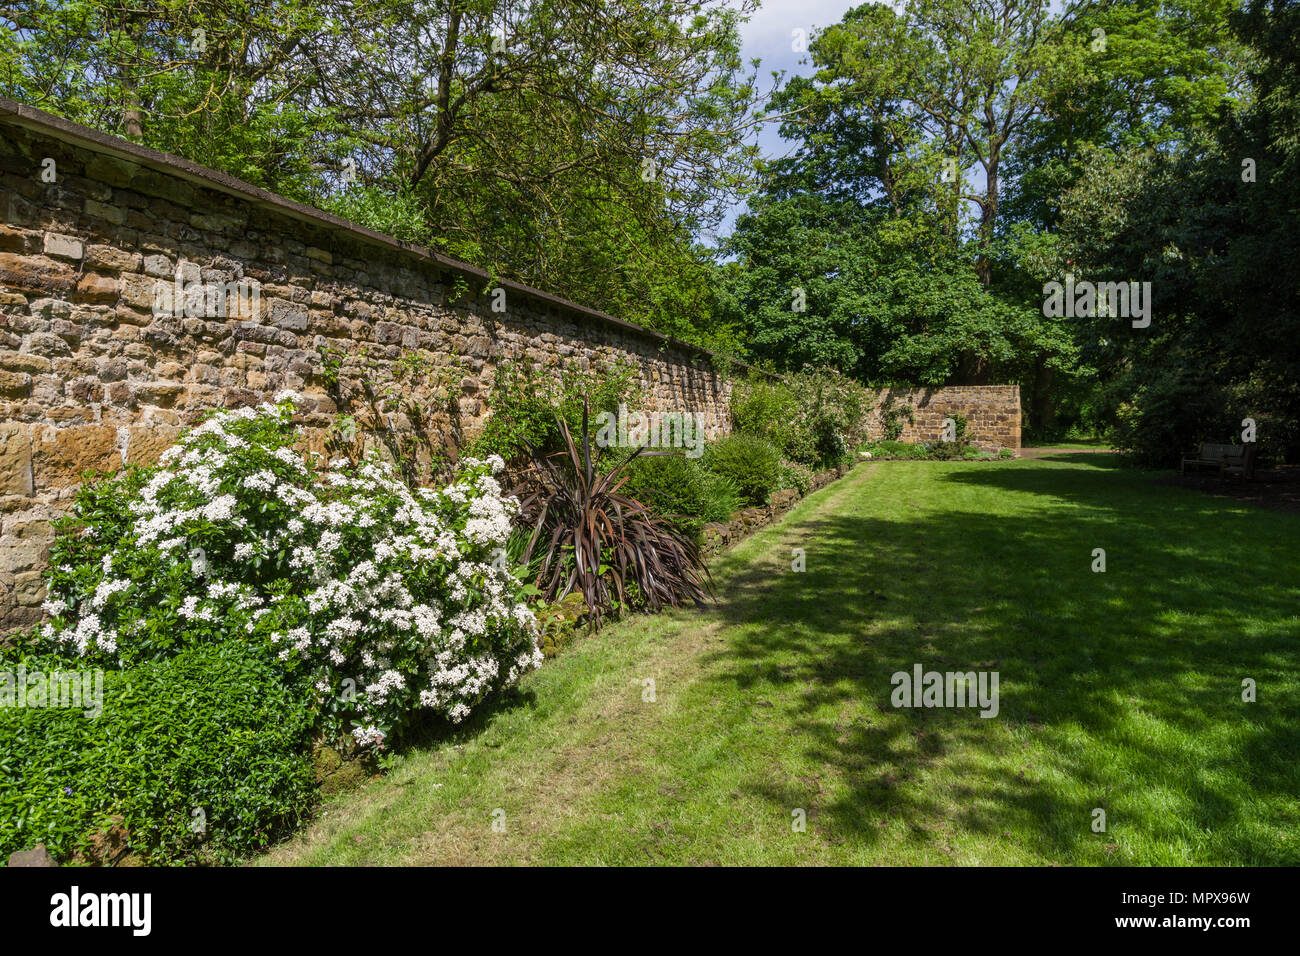 A Spring border against an old stone wall in the gardens of Delapre Abbey, Northampton, UK